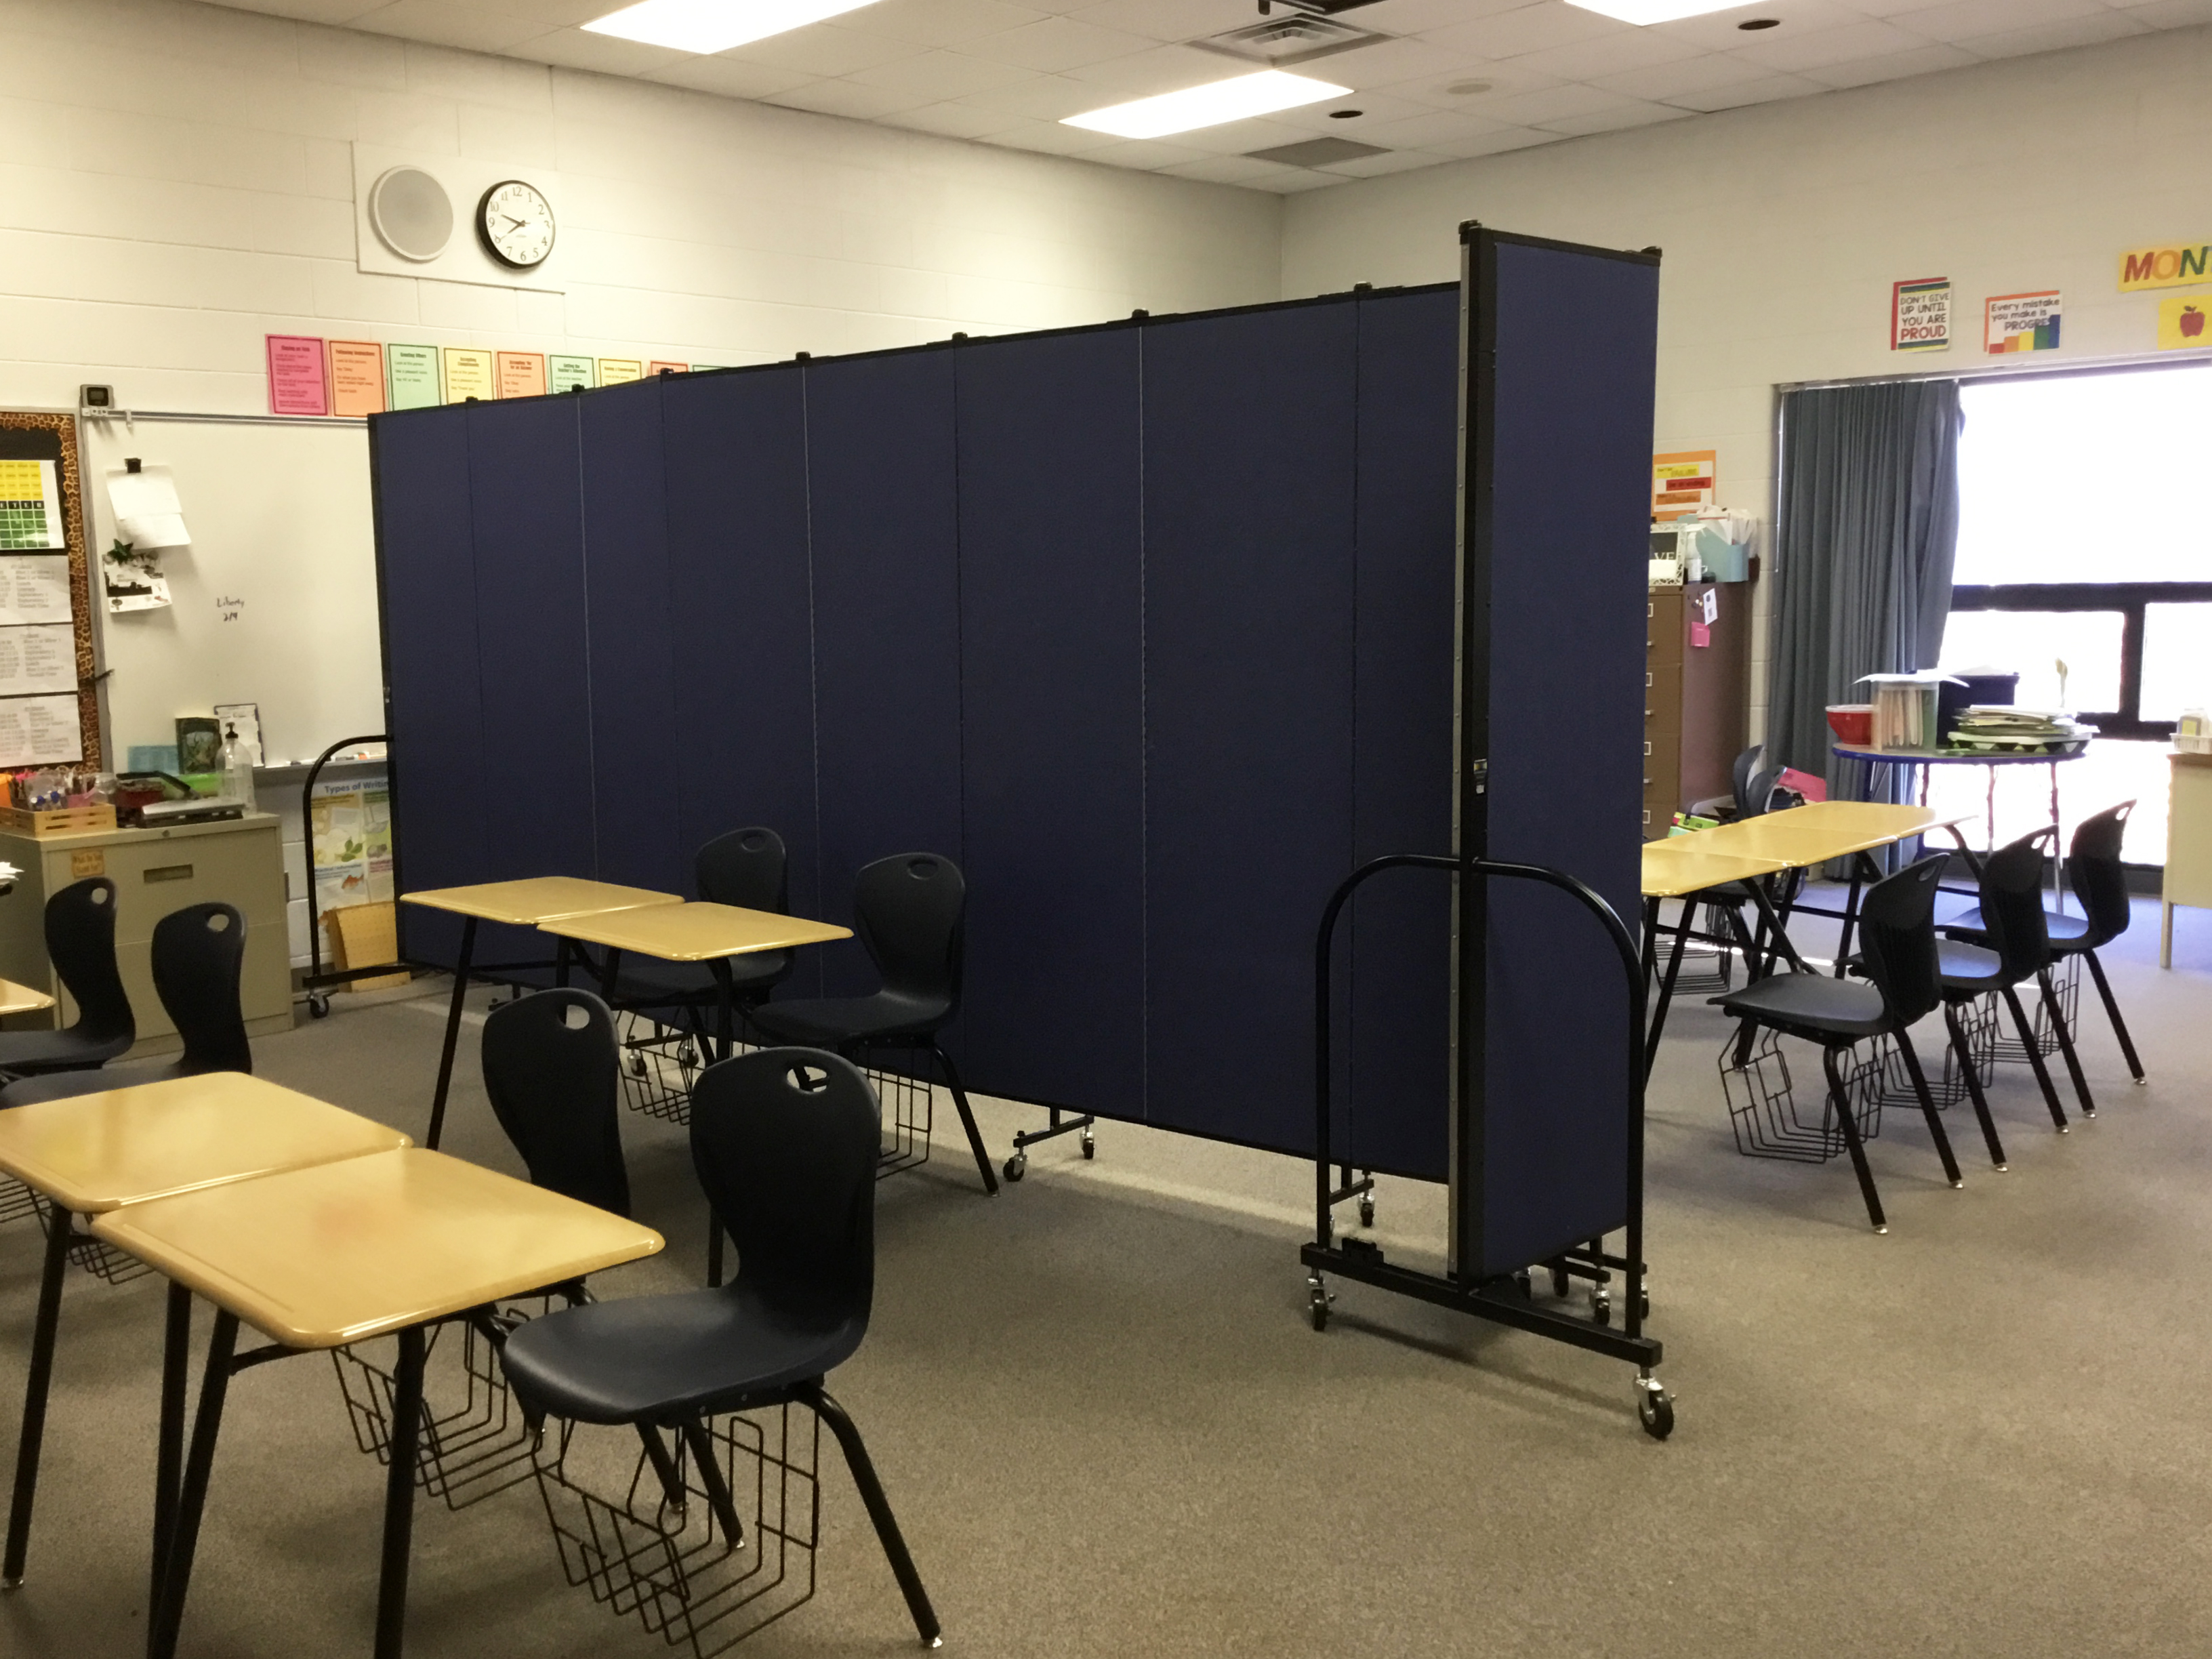 A room divider separates a classroom into two rooms